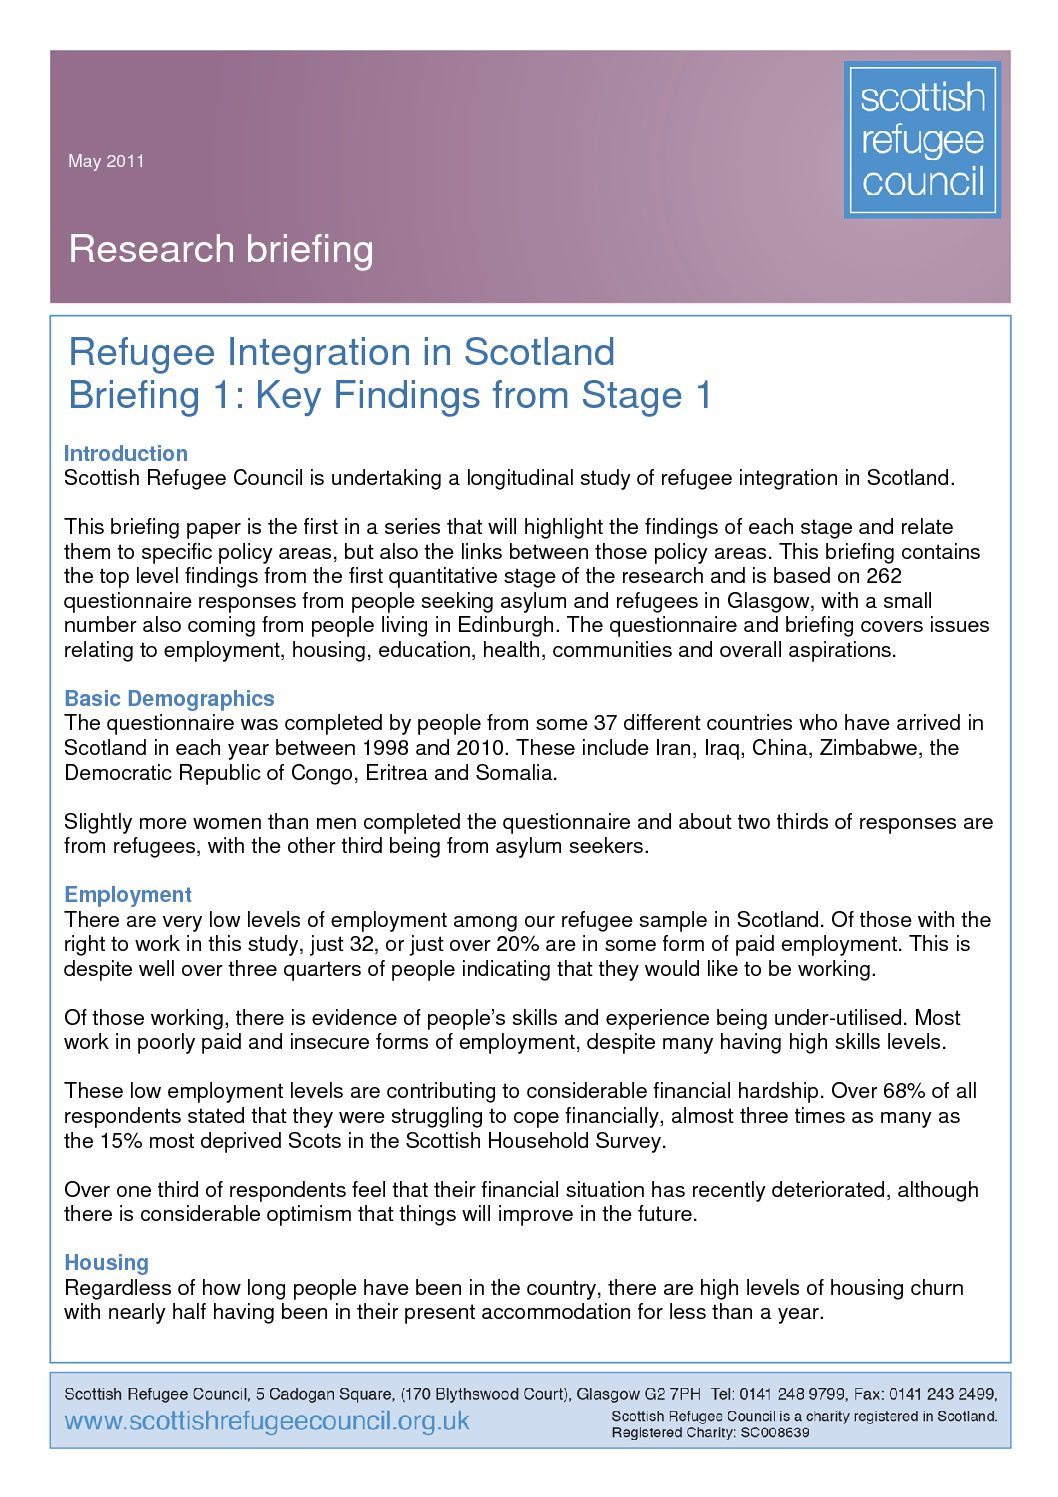 Briefing-1-Key-Findings-from-Stage-1-pdf